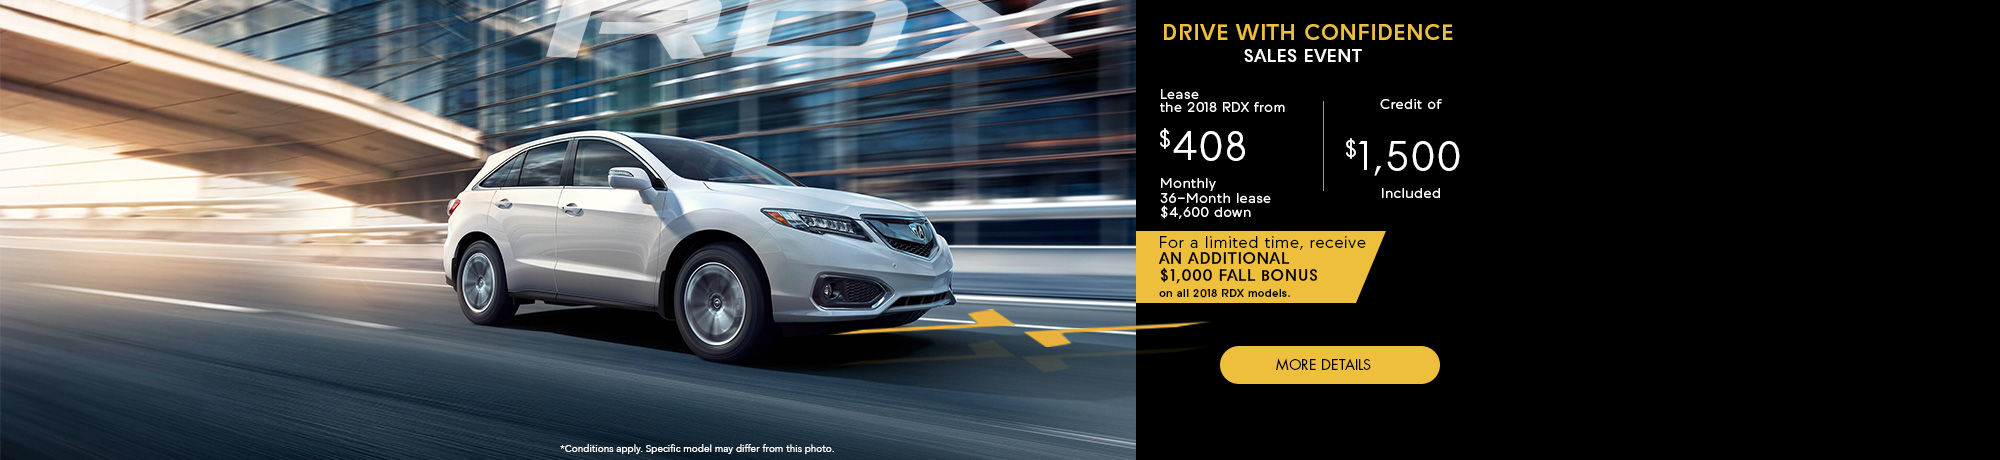 Drive With Confidence Sales Event - RDX - Octobre